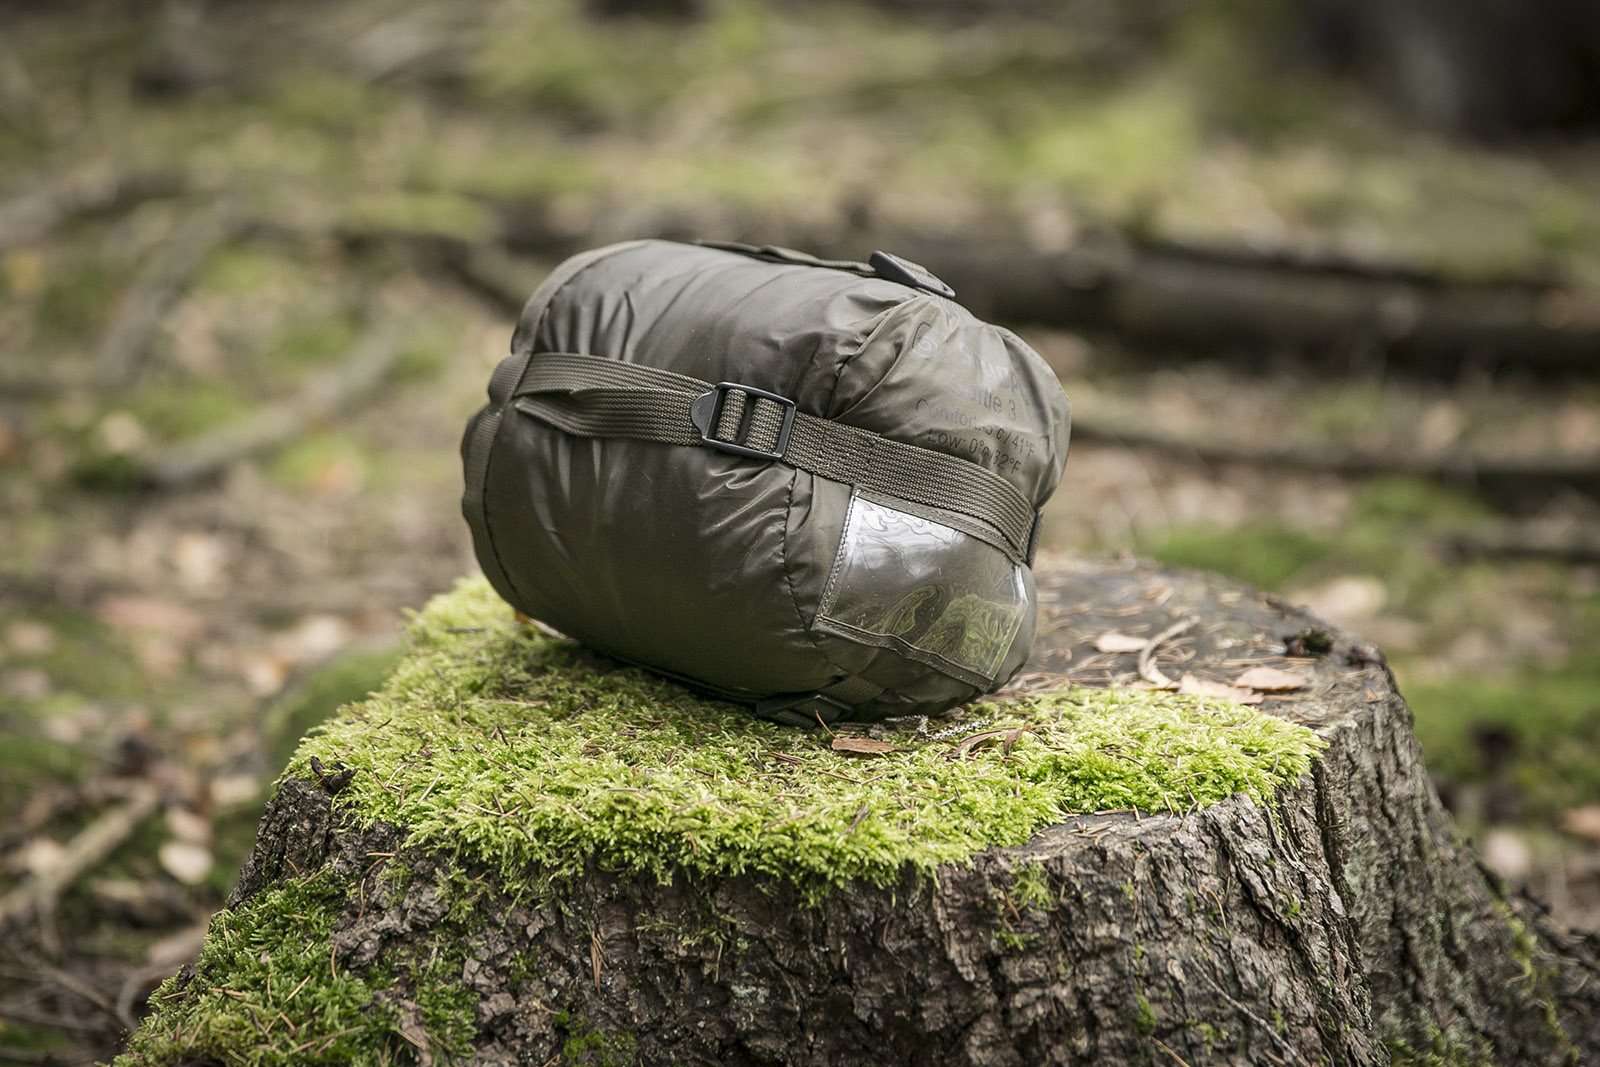 SNUGPAK Softie 3 Merlin sleeping bag